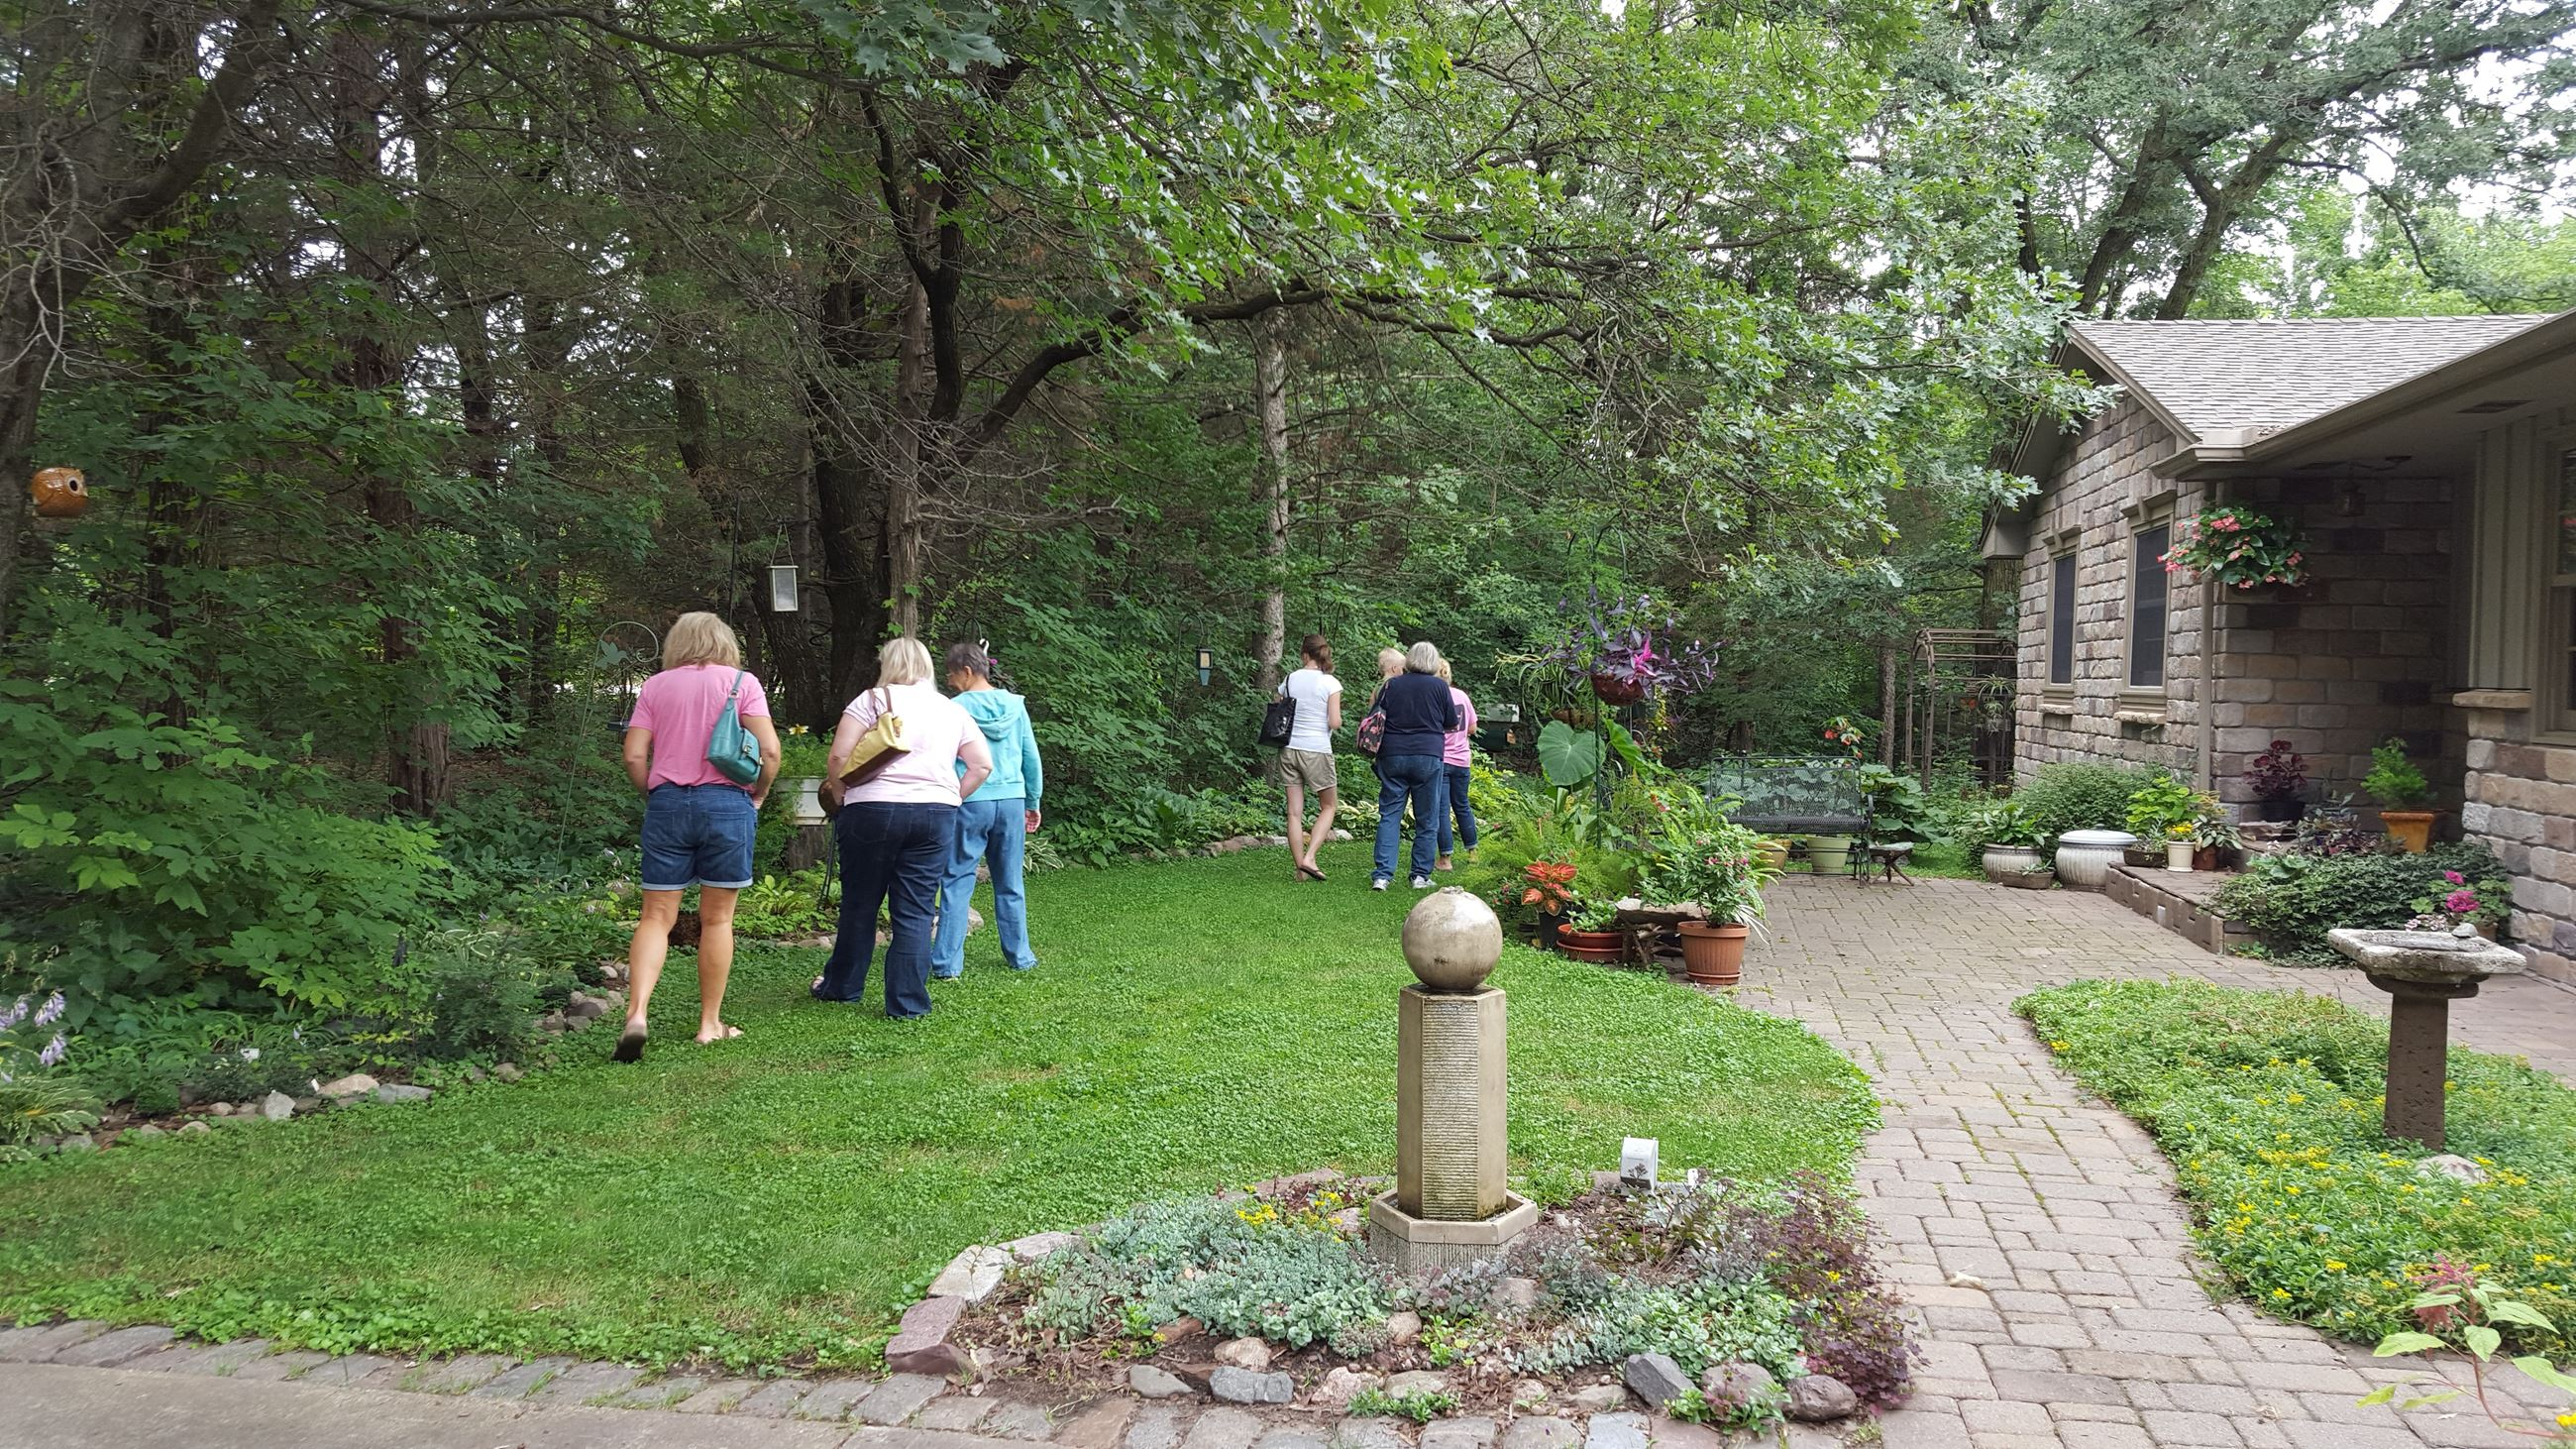 Andover garden tour - people (3)